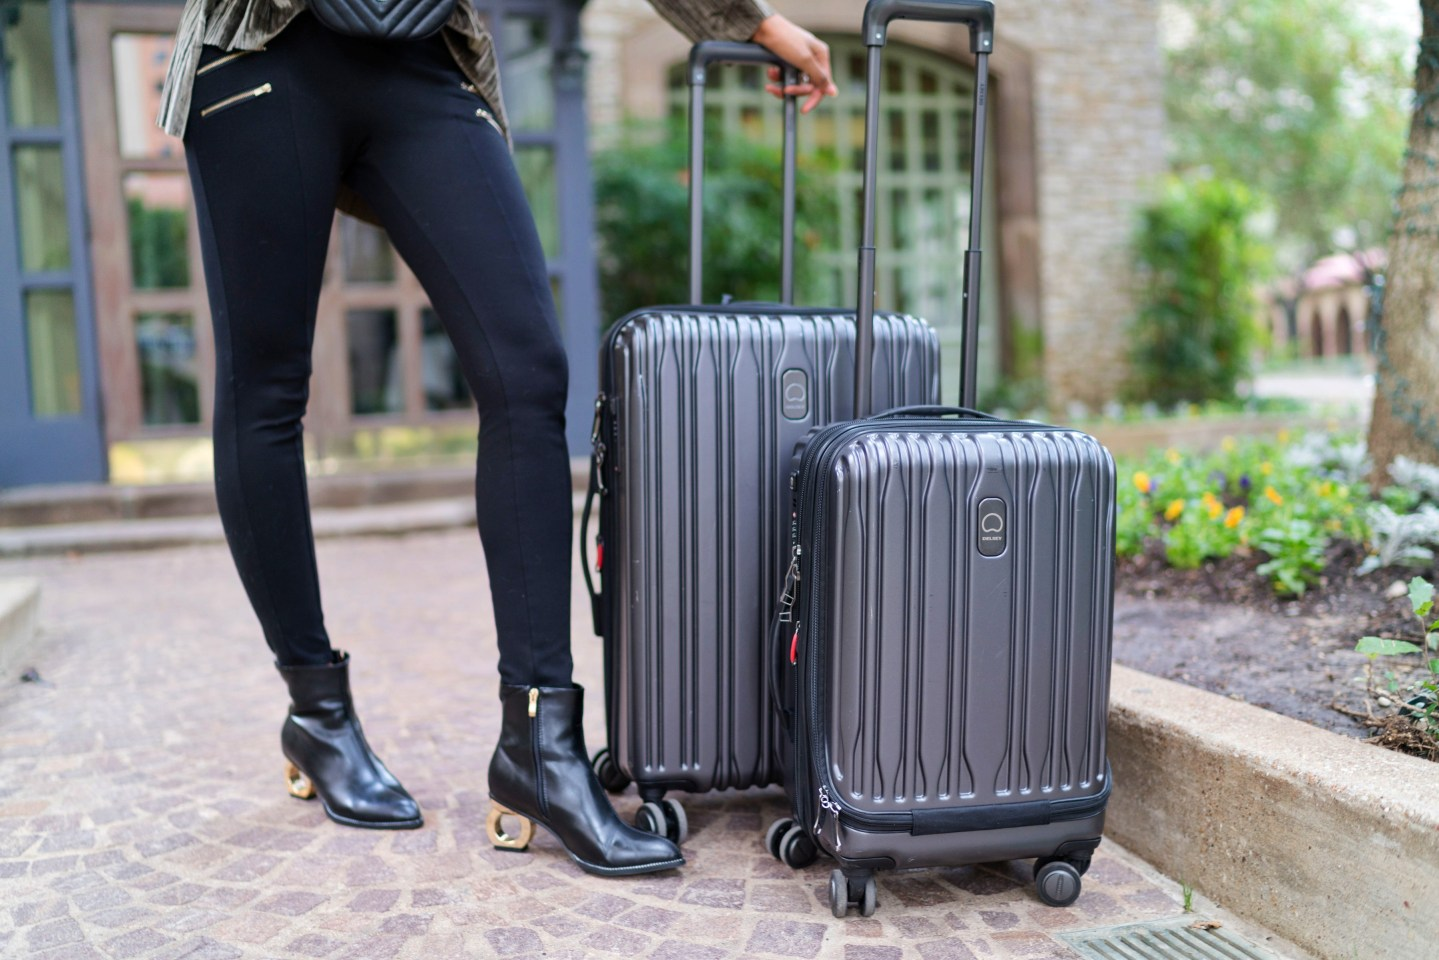 Best Black Friday Deals – Luggage, Clothes, Beauty & Electronics